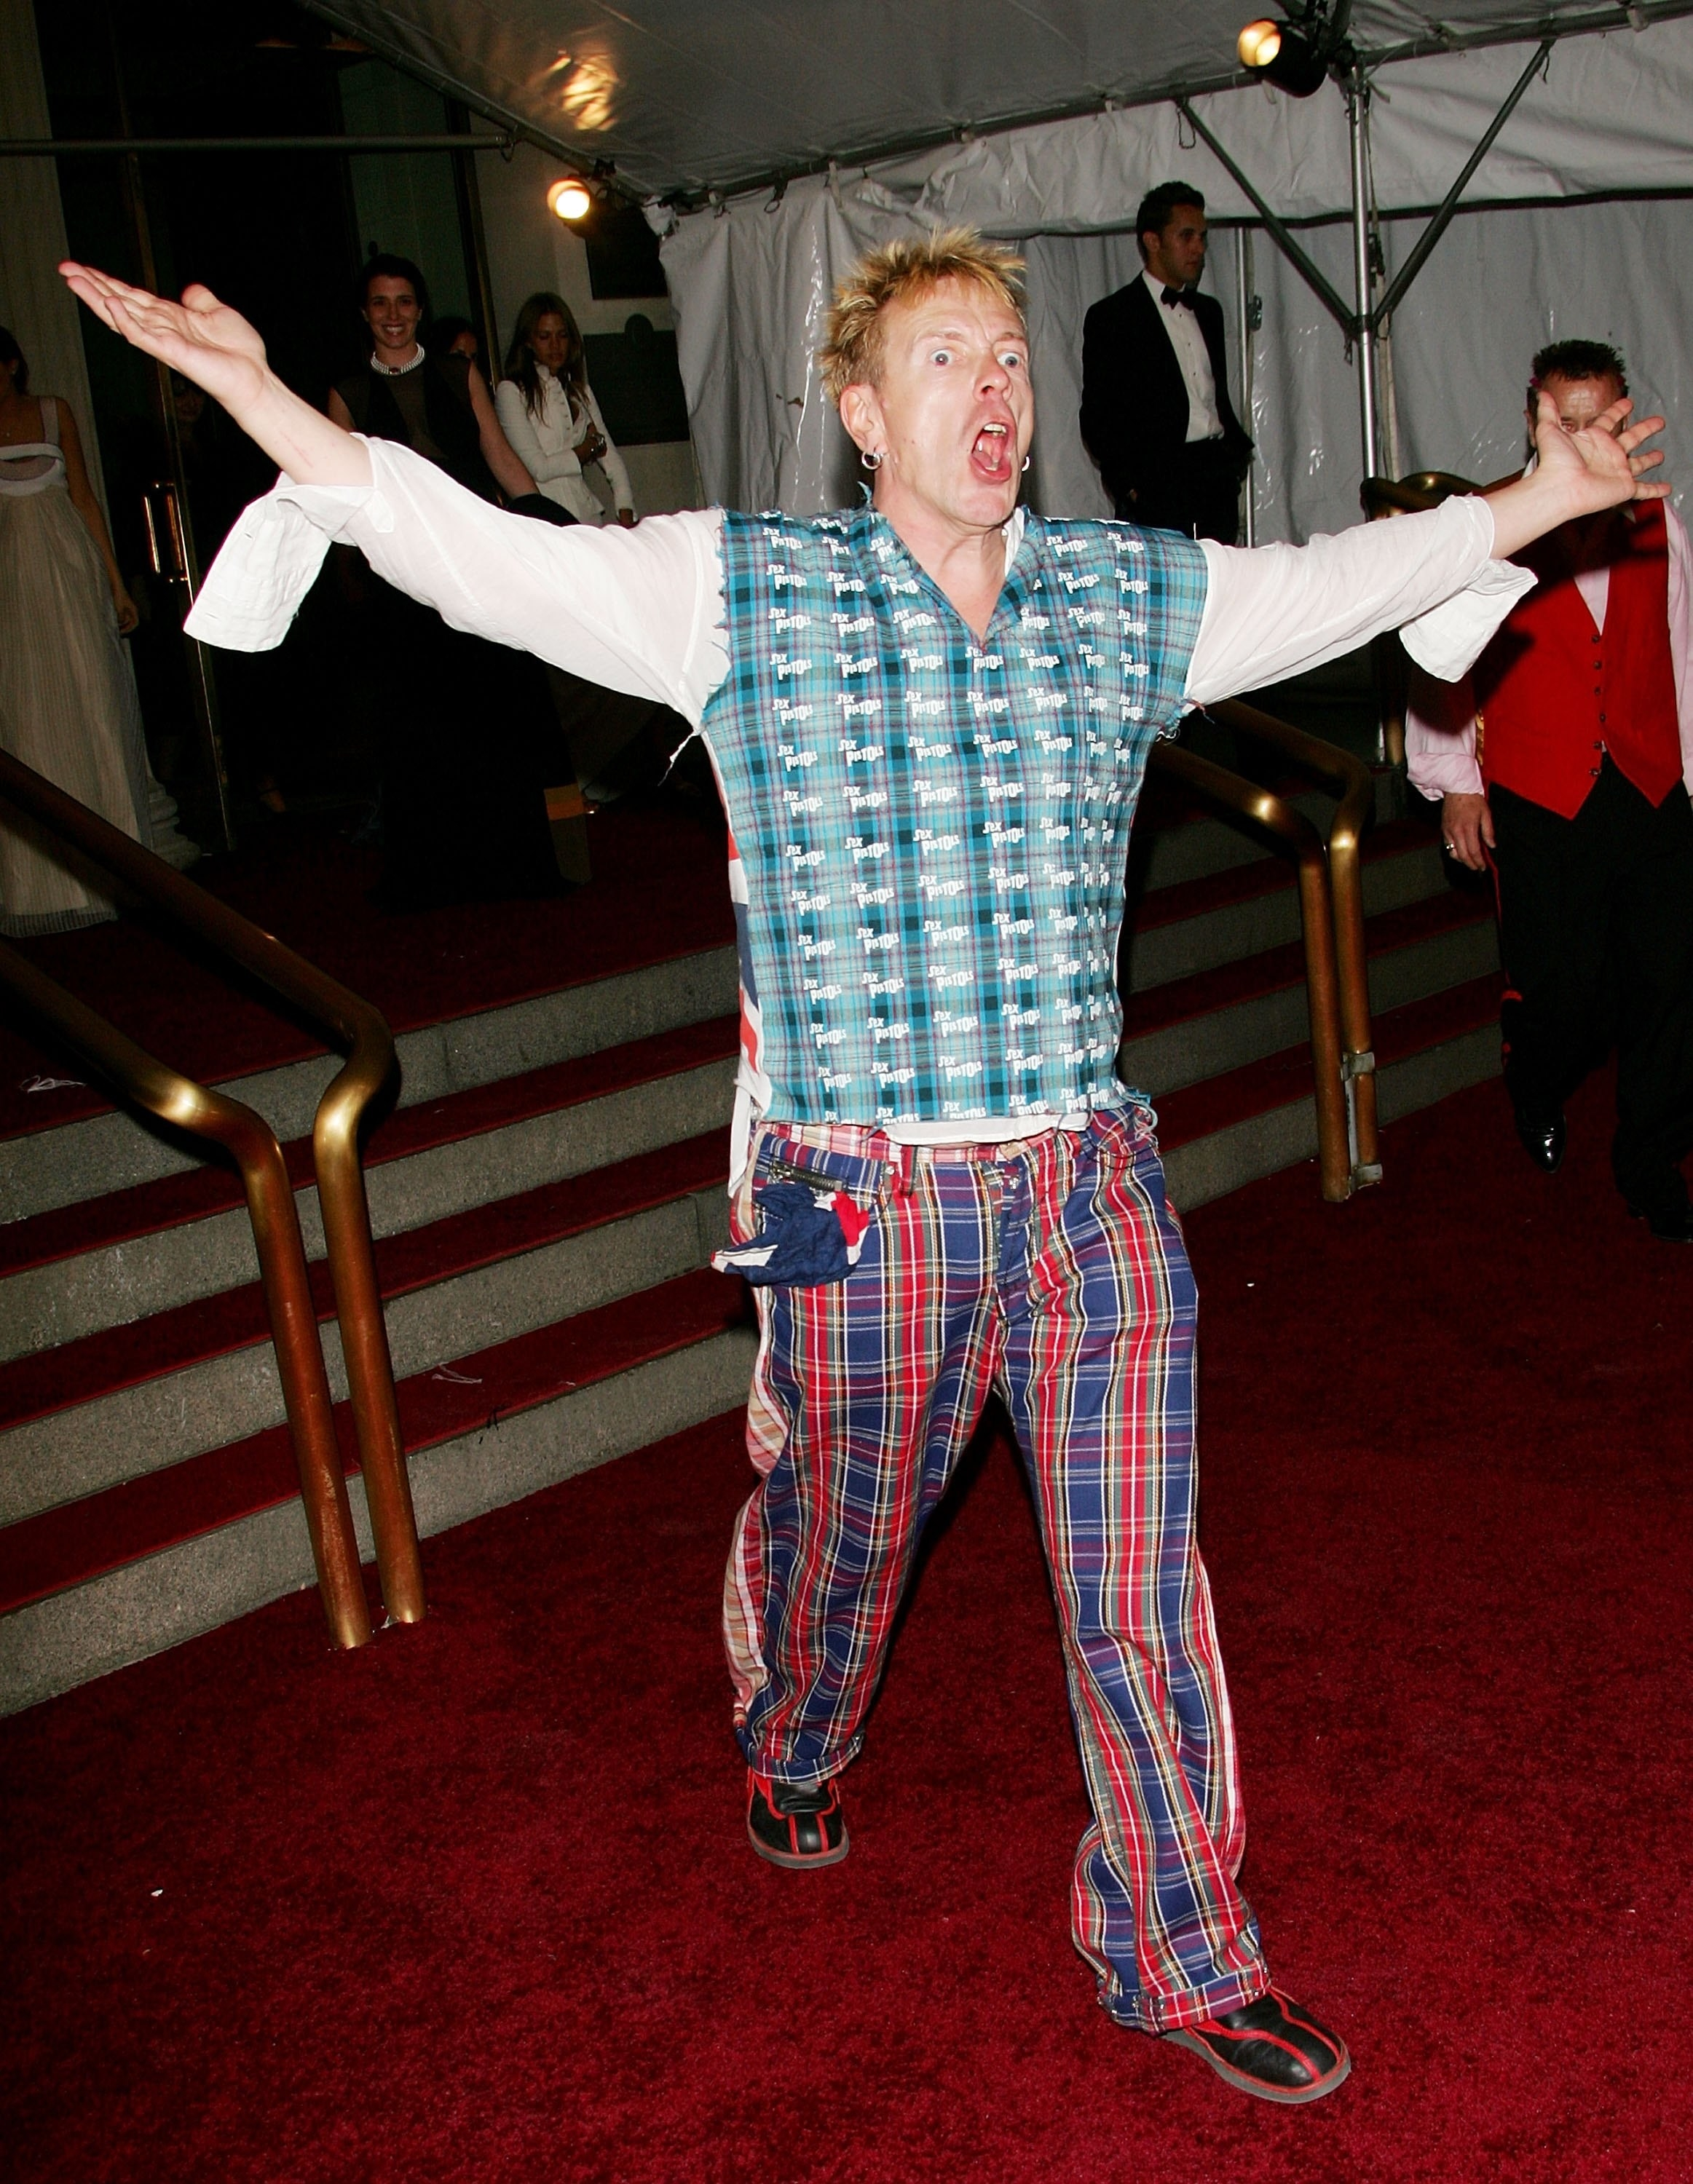 John Lydon screaming with his arms waving in the air